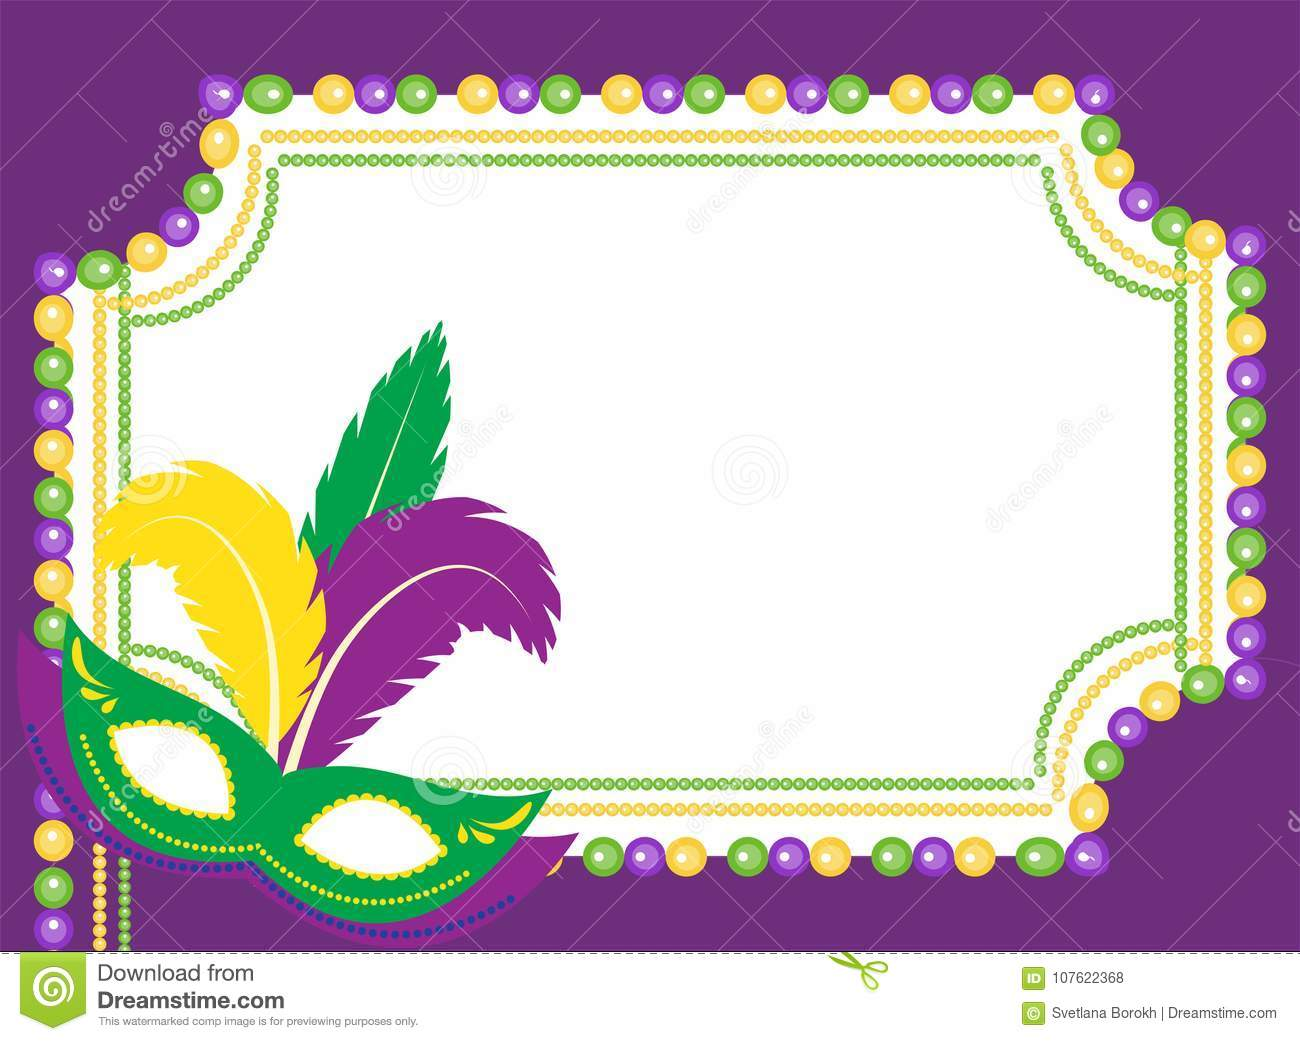 Mardi Gras Beads Colored Frame With A Mask, On White Background ...